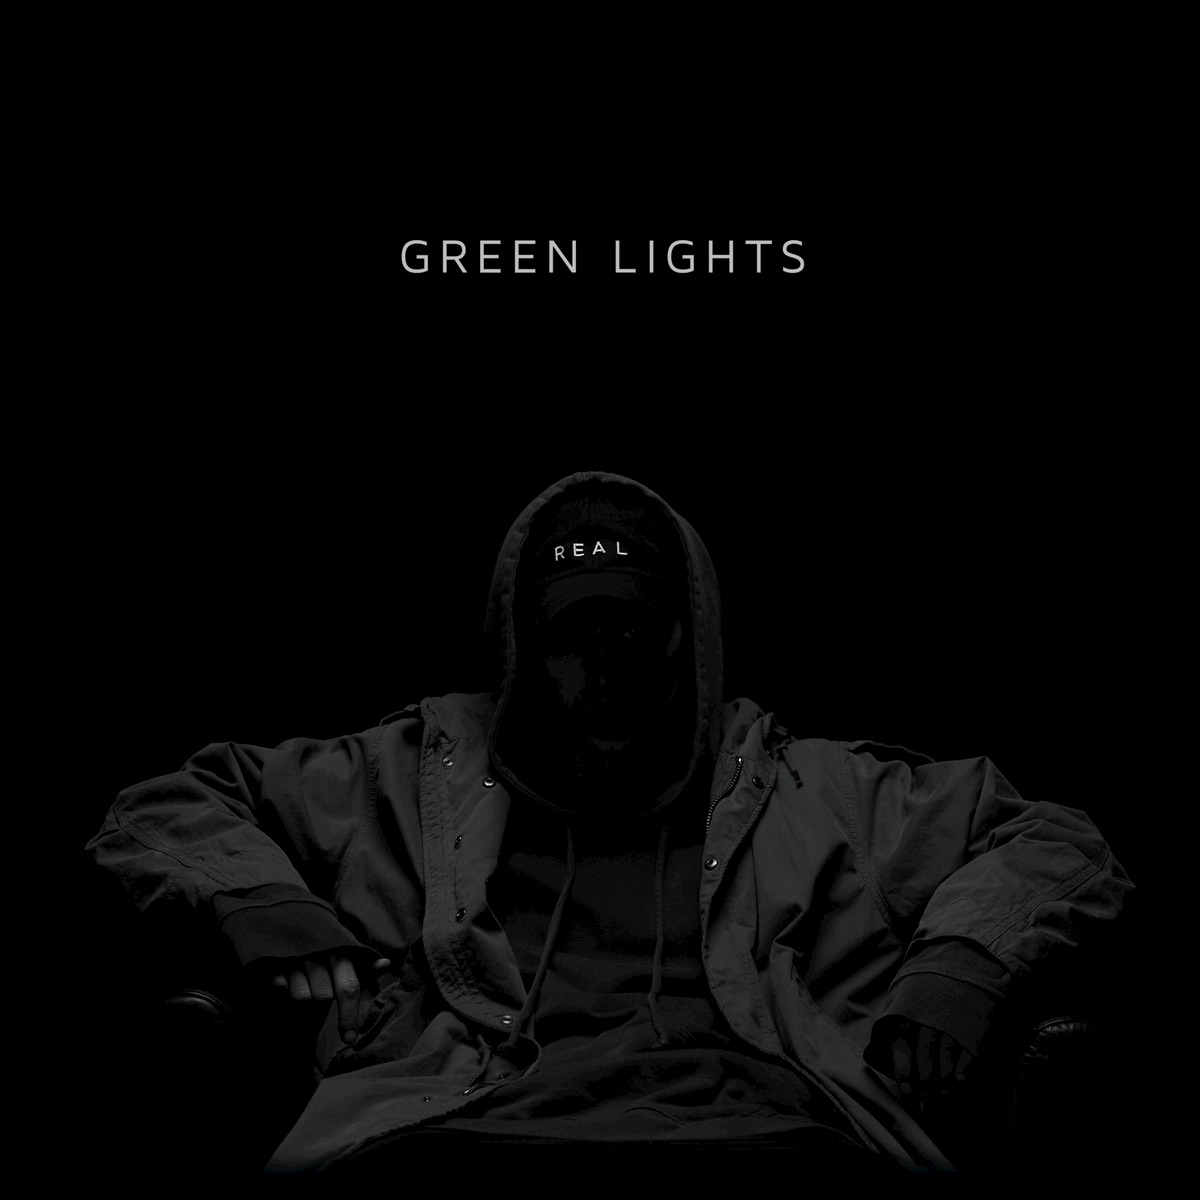 Green Lights - Single NF CD cover